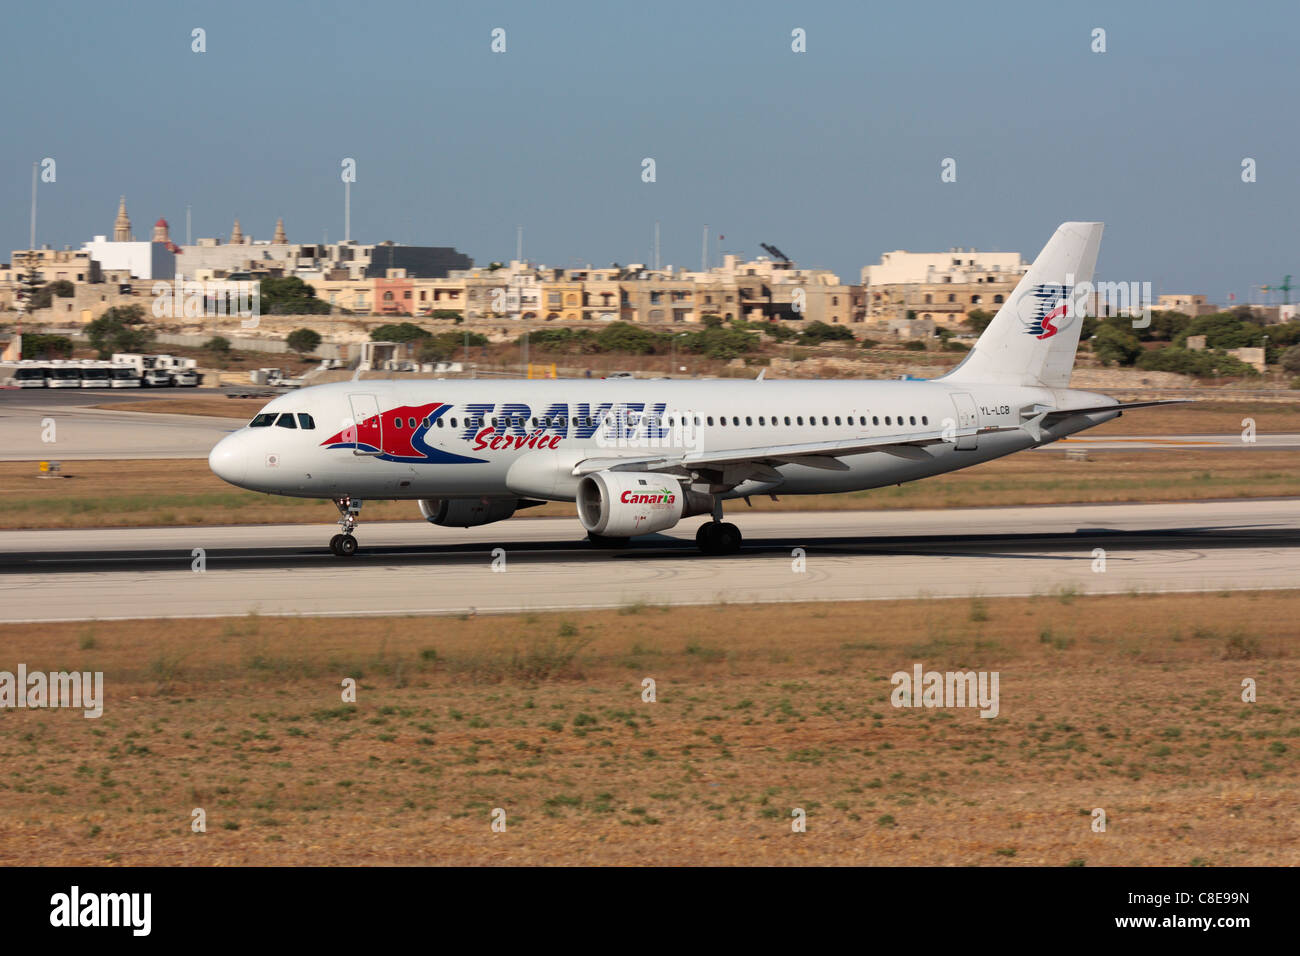 Travel Service Airbus A320 accelerating on the runway for departure from Malta - Stock Image